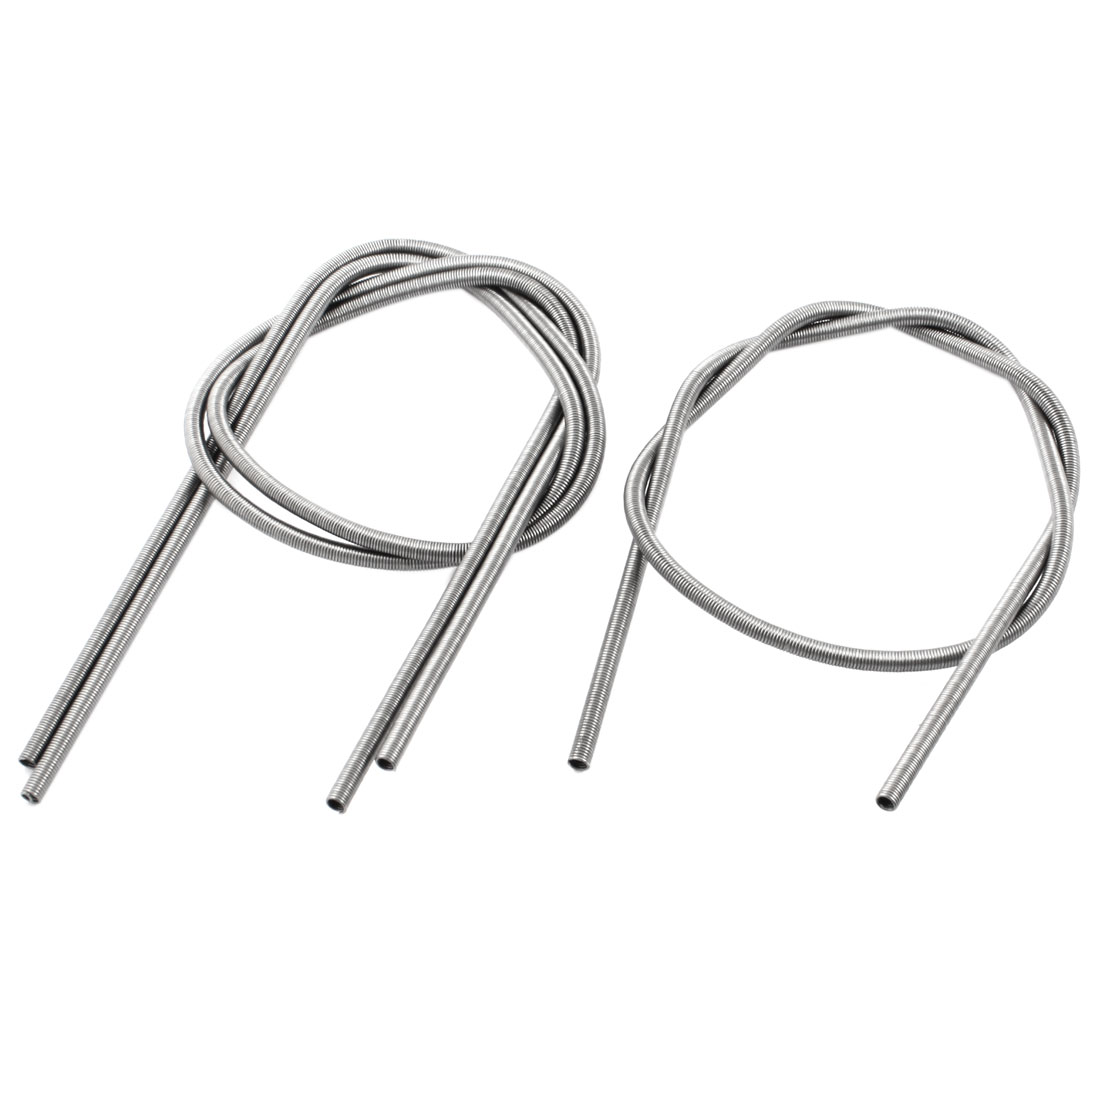 3 Pcs 660x5mm Forging Pottery Heating Heater Element Wire Coil 2KW AC220V